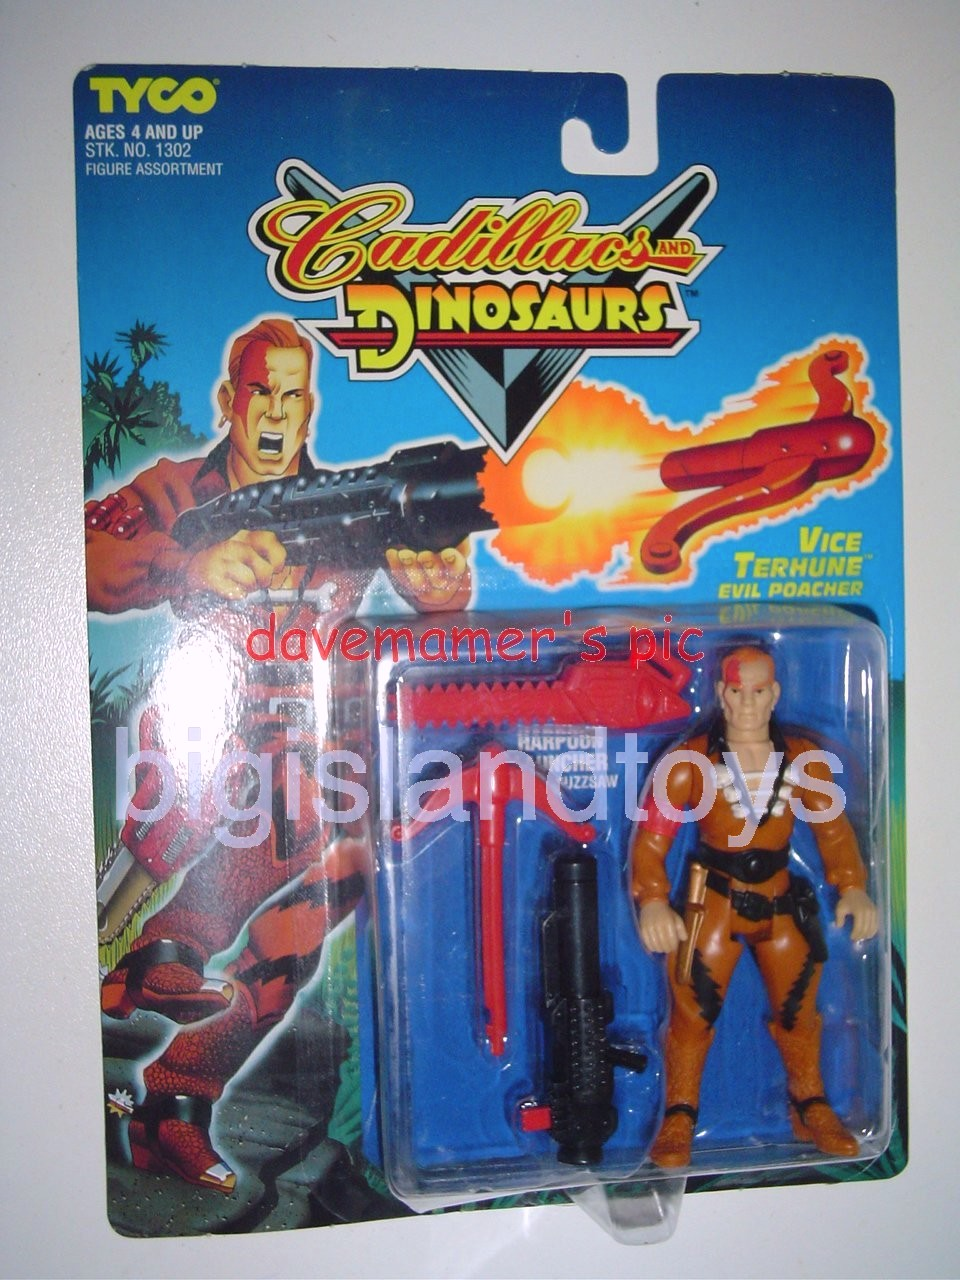 Cadillacs and Dinosaurs    VICE TERHUNE Evil Poacher